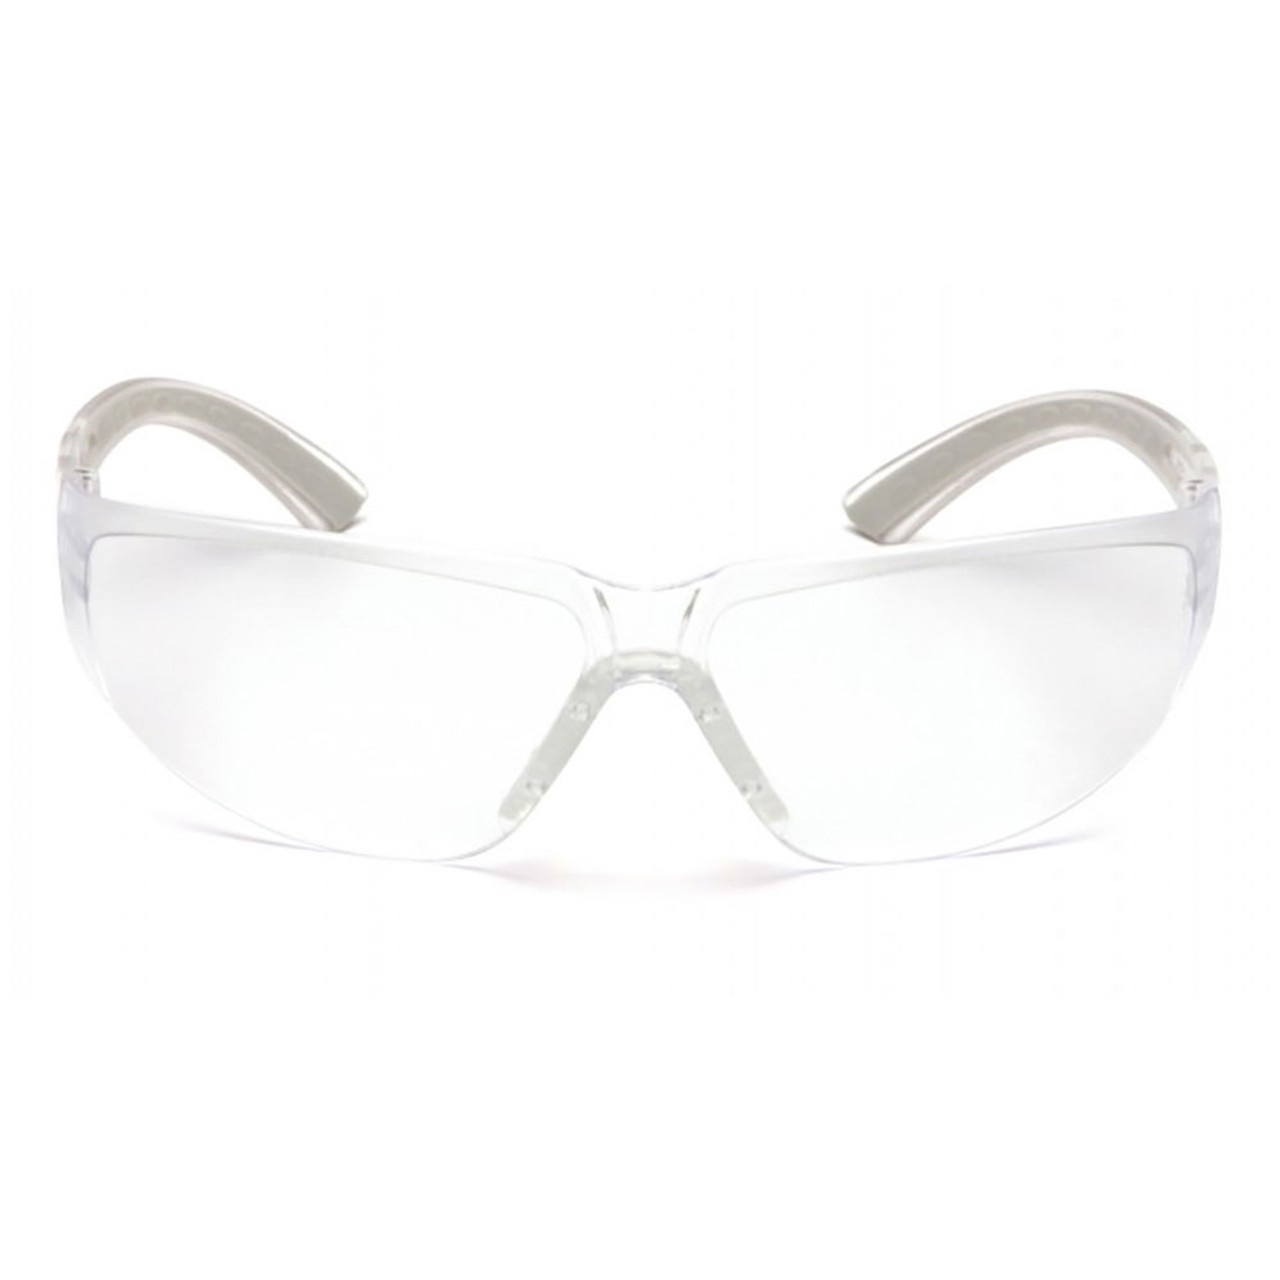 Pyramex Cortez Series Safety Glasses with Clear Lens, 12 Pack